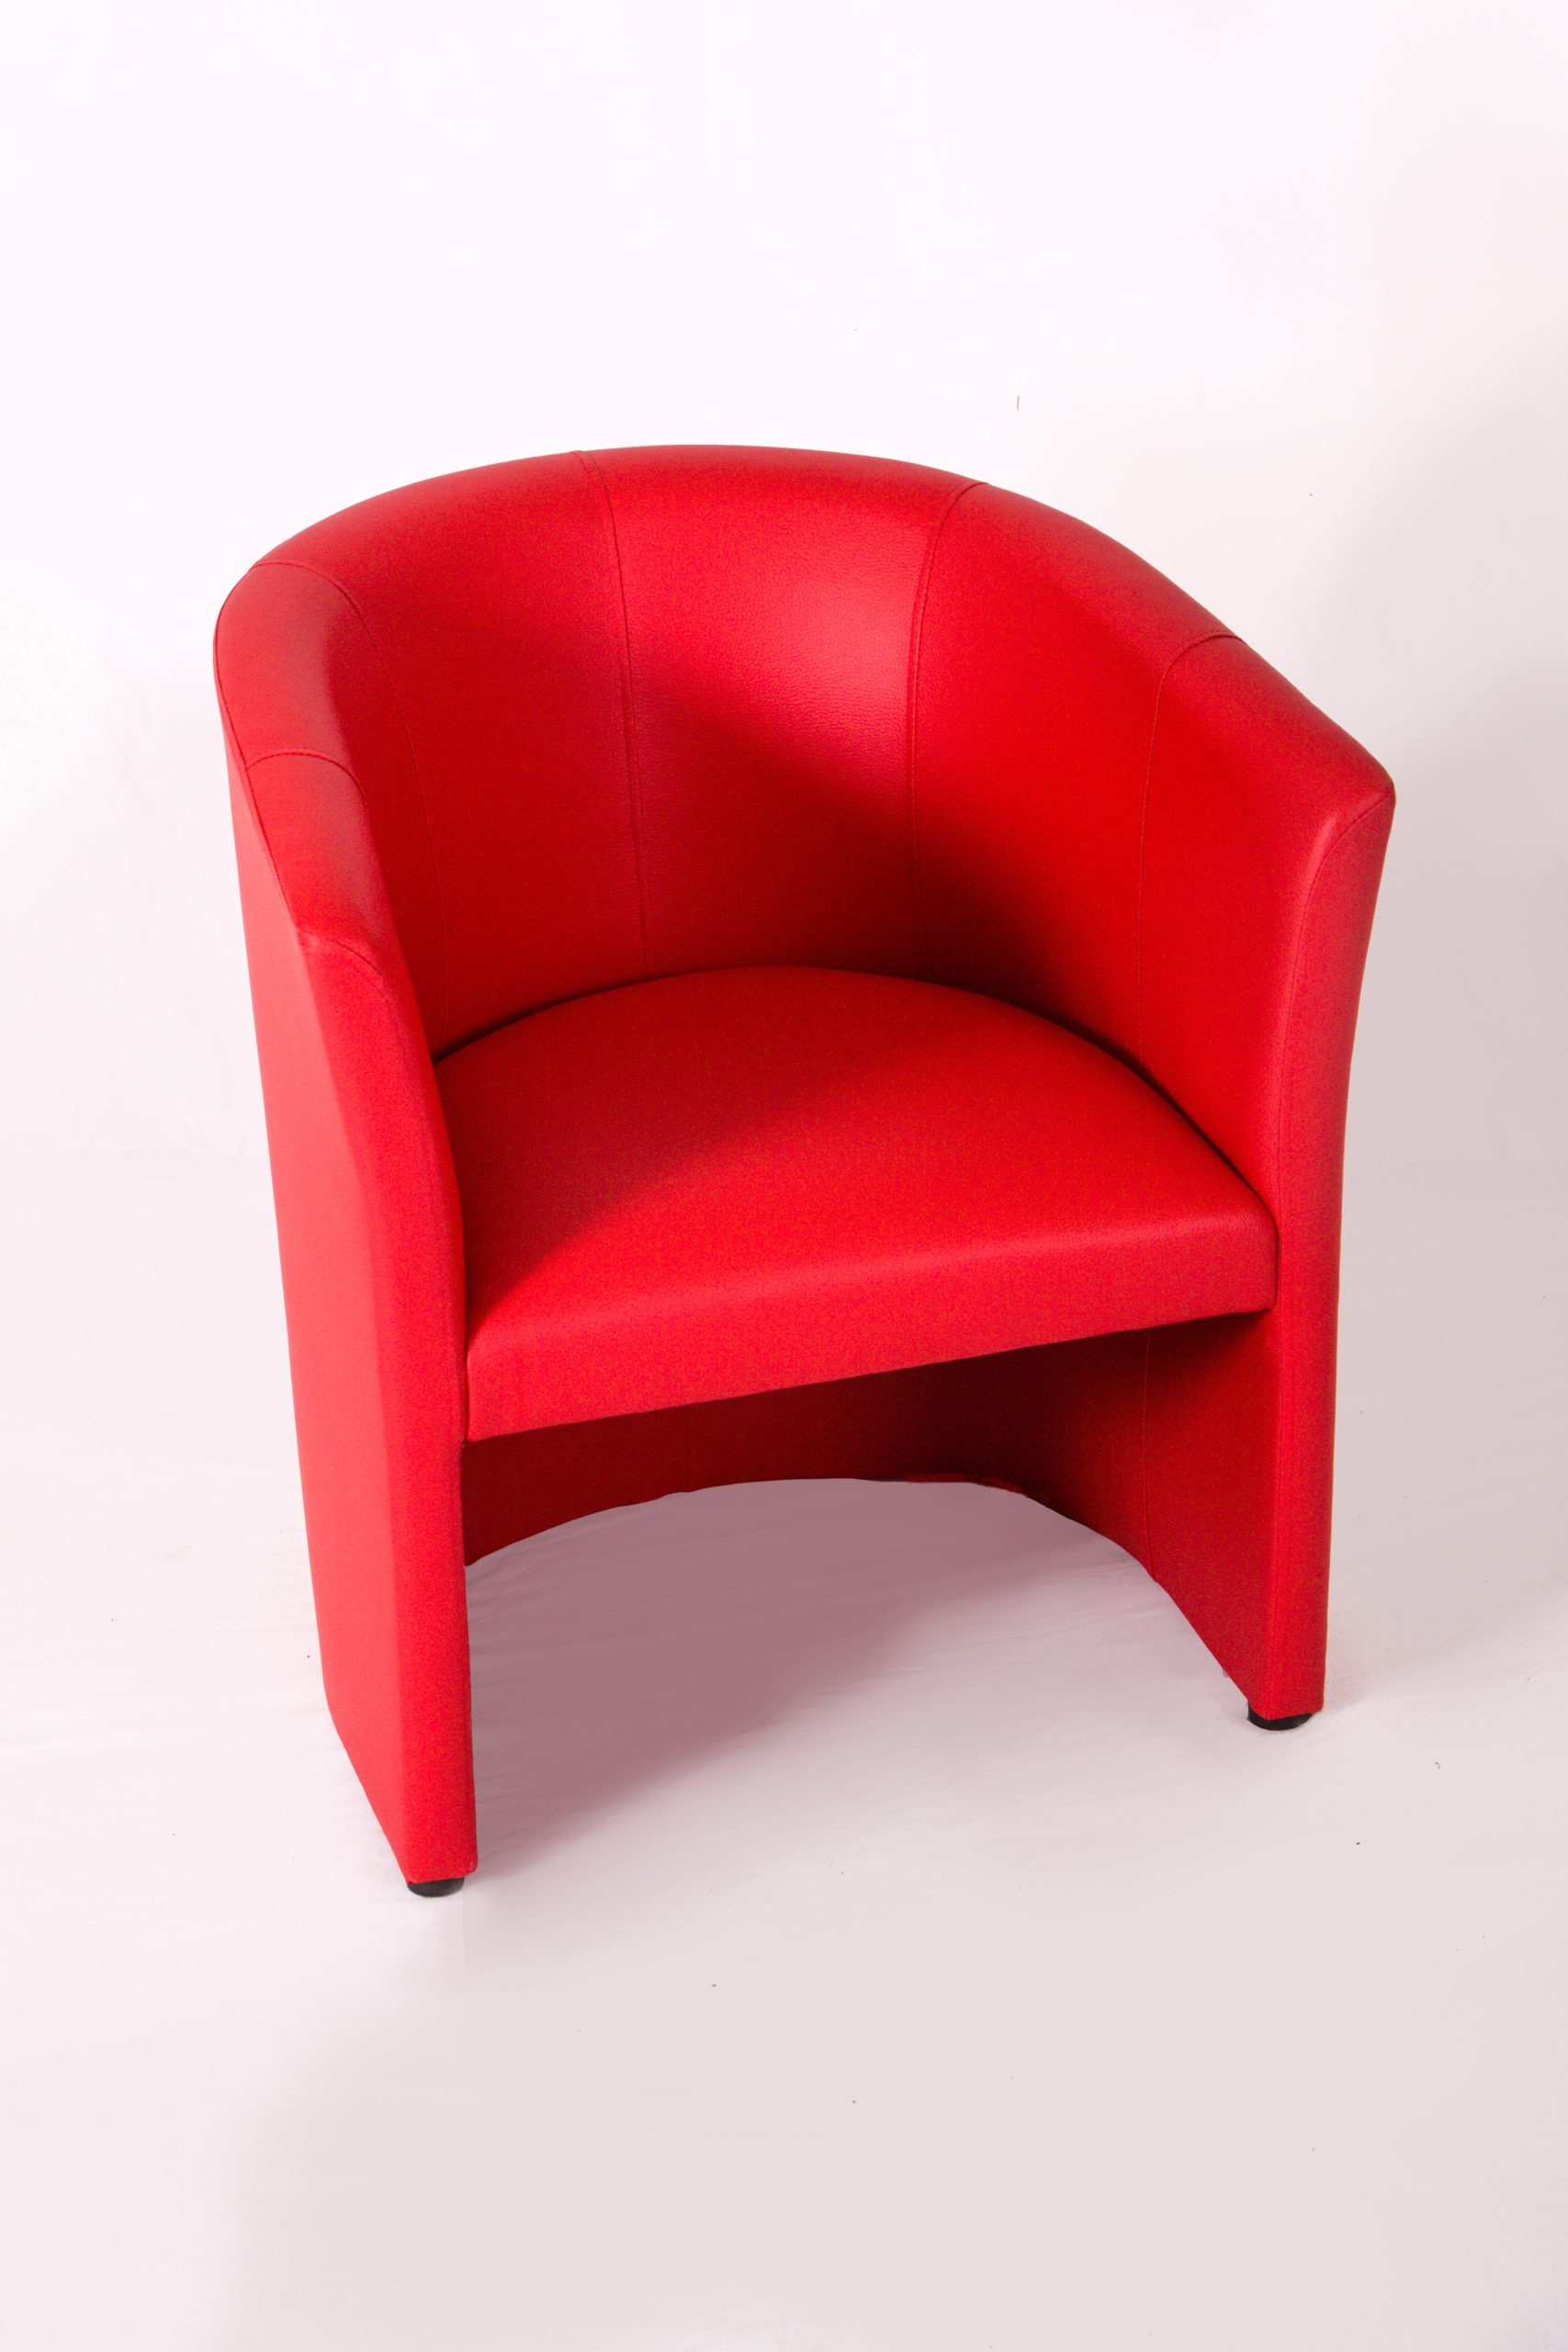 Loungesessel Sessel rot